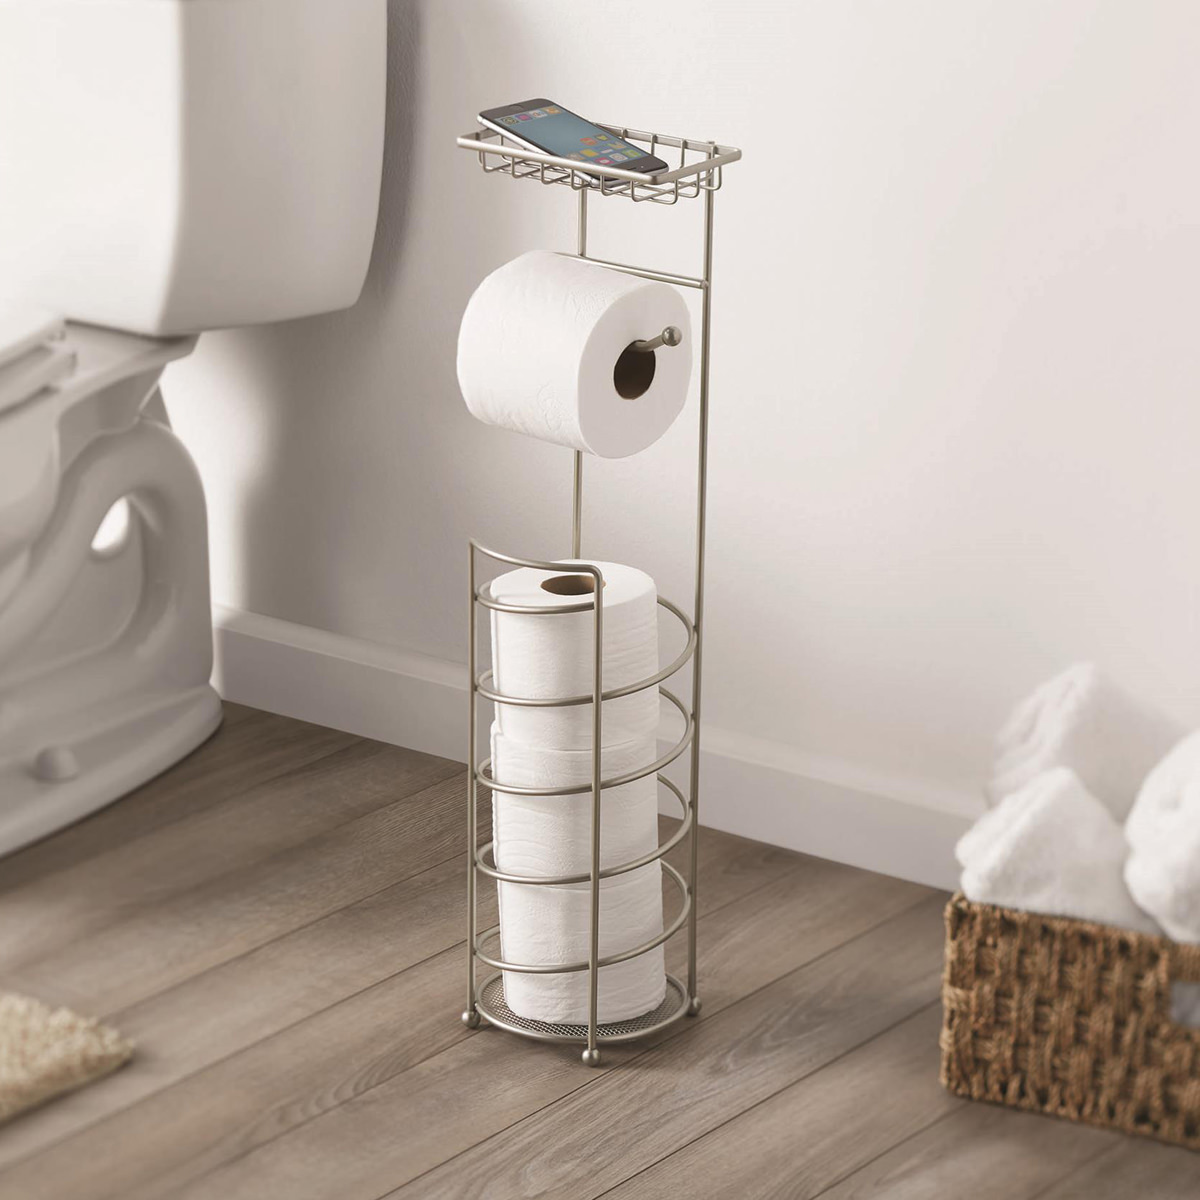 Better Home & Garden Cell Phone Toilet Paper Reserve, Satin Nickel